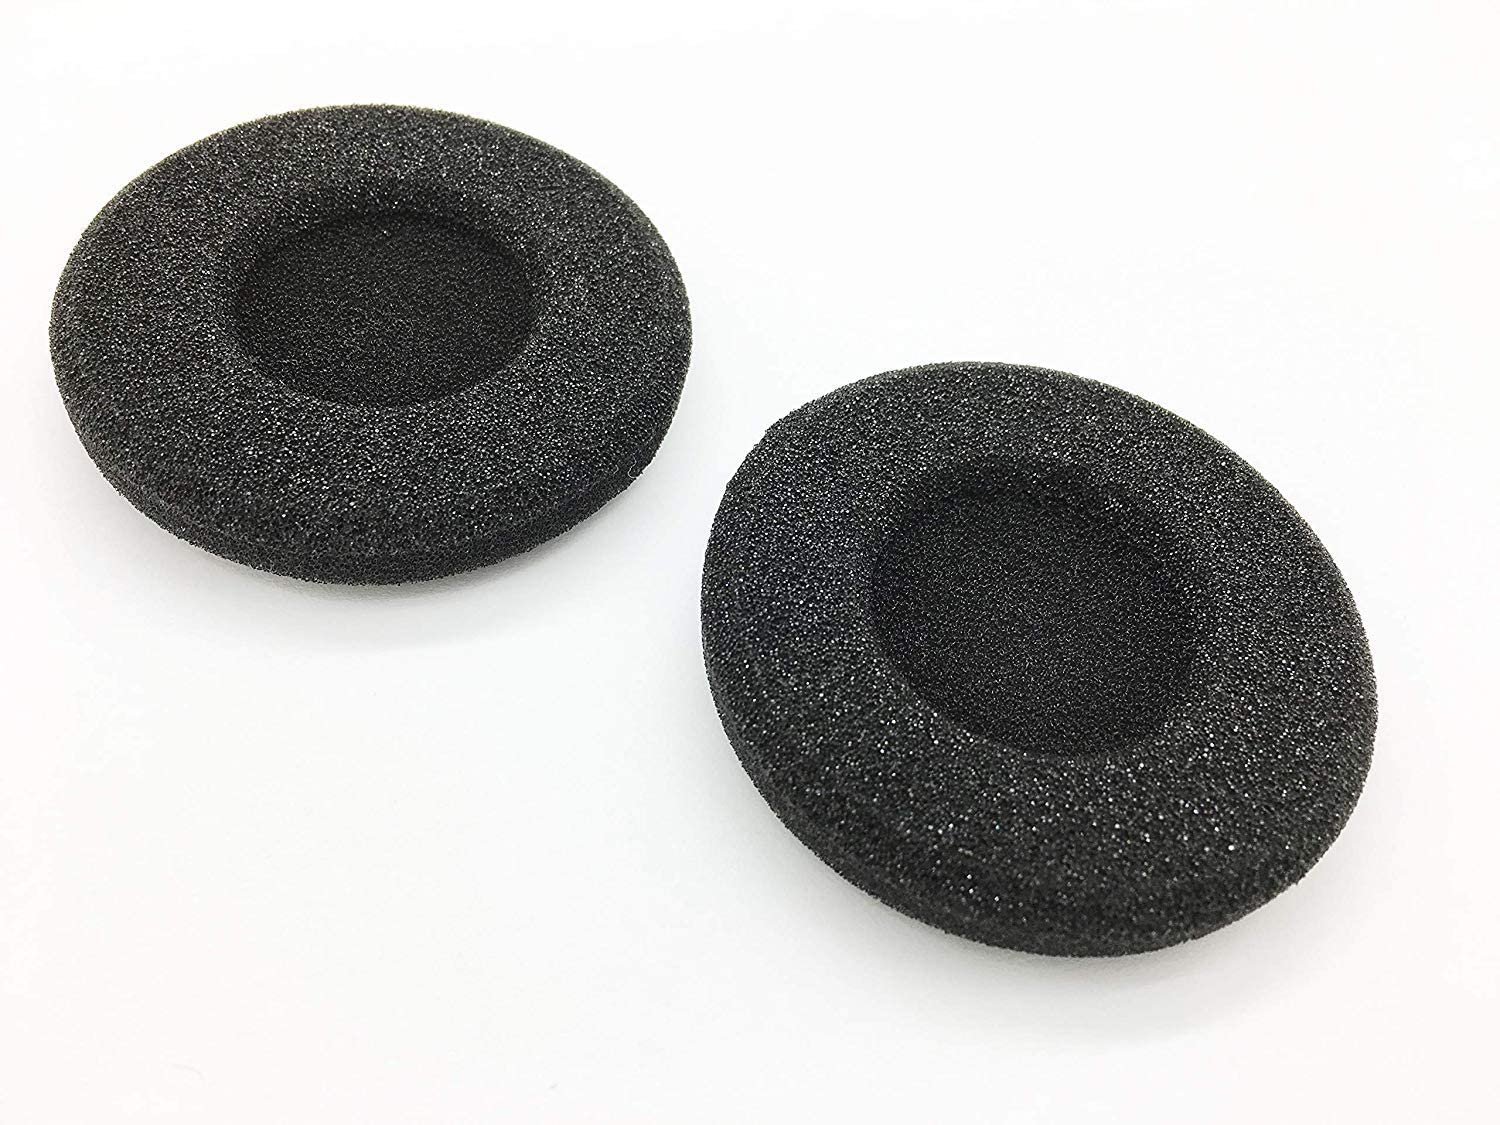 Reki Replacement Premium Ear Pads Cushions Compatible with Sennheiser PX90 AKG K420 K420P K402 K403 K412 Headphones (6 Pack)